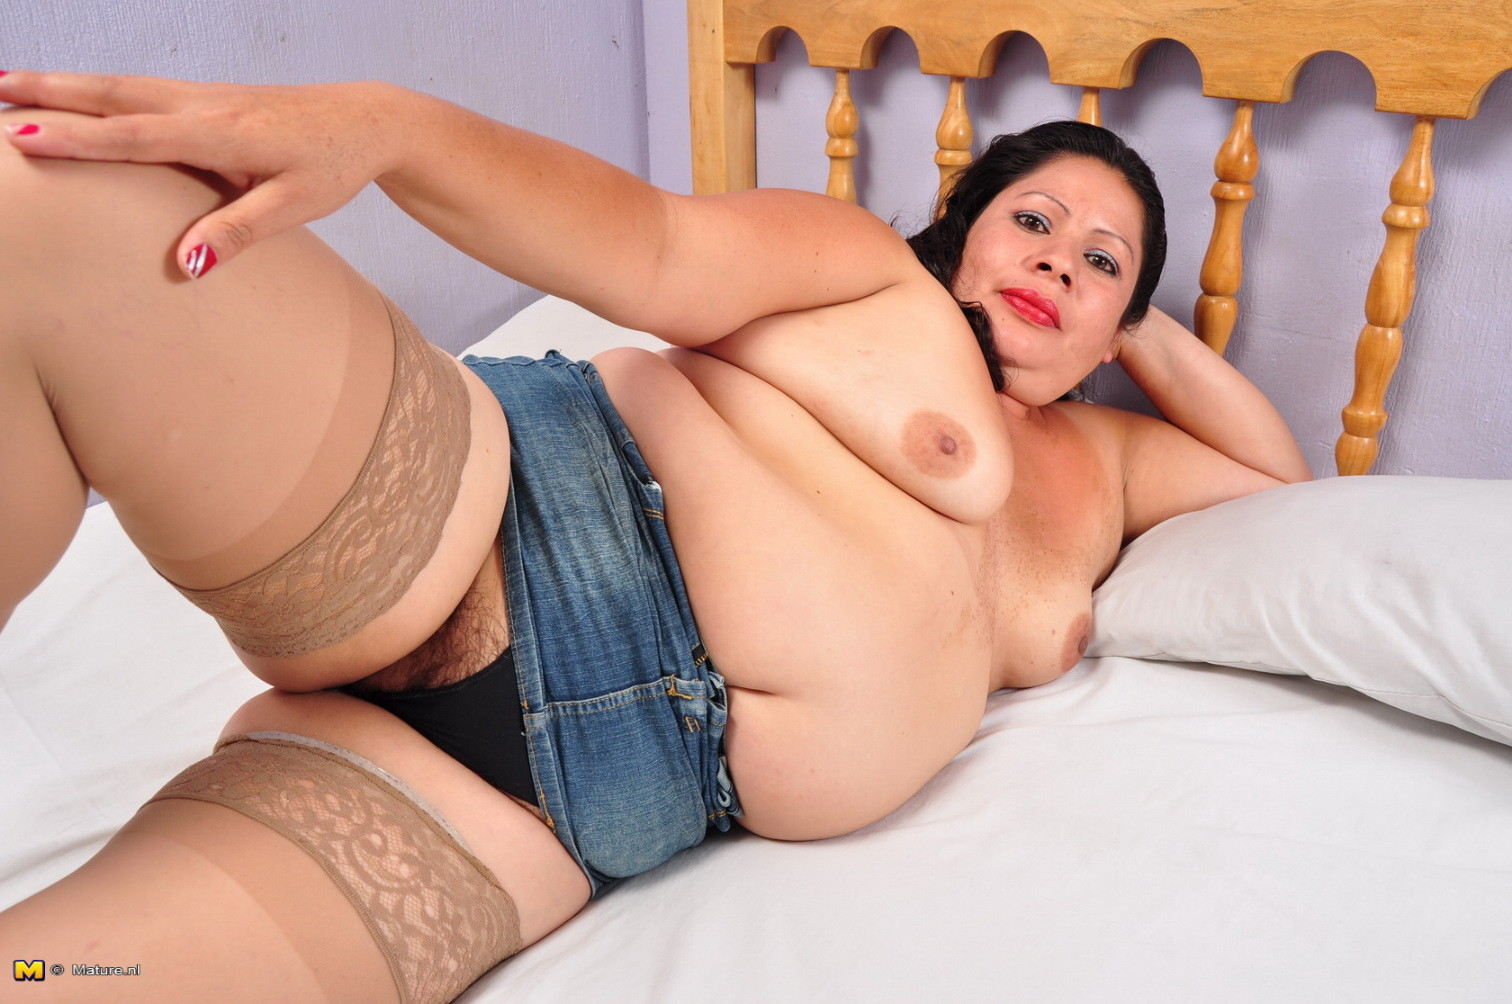 Right! Idea chubby hairy latina pussy congratulate